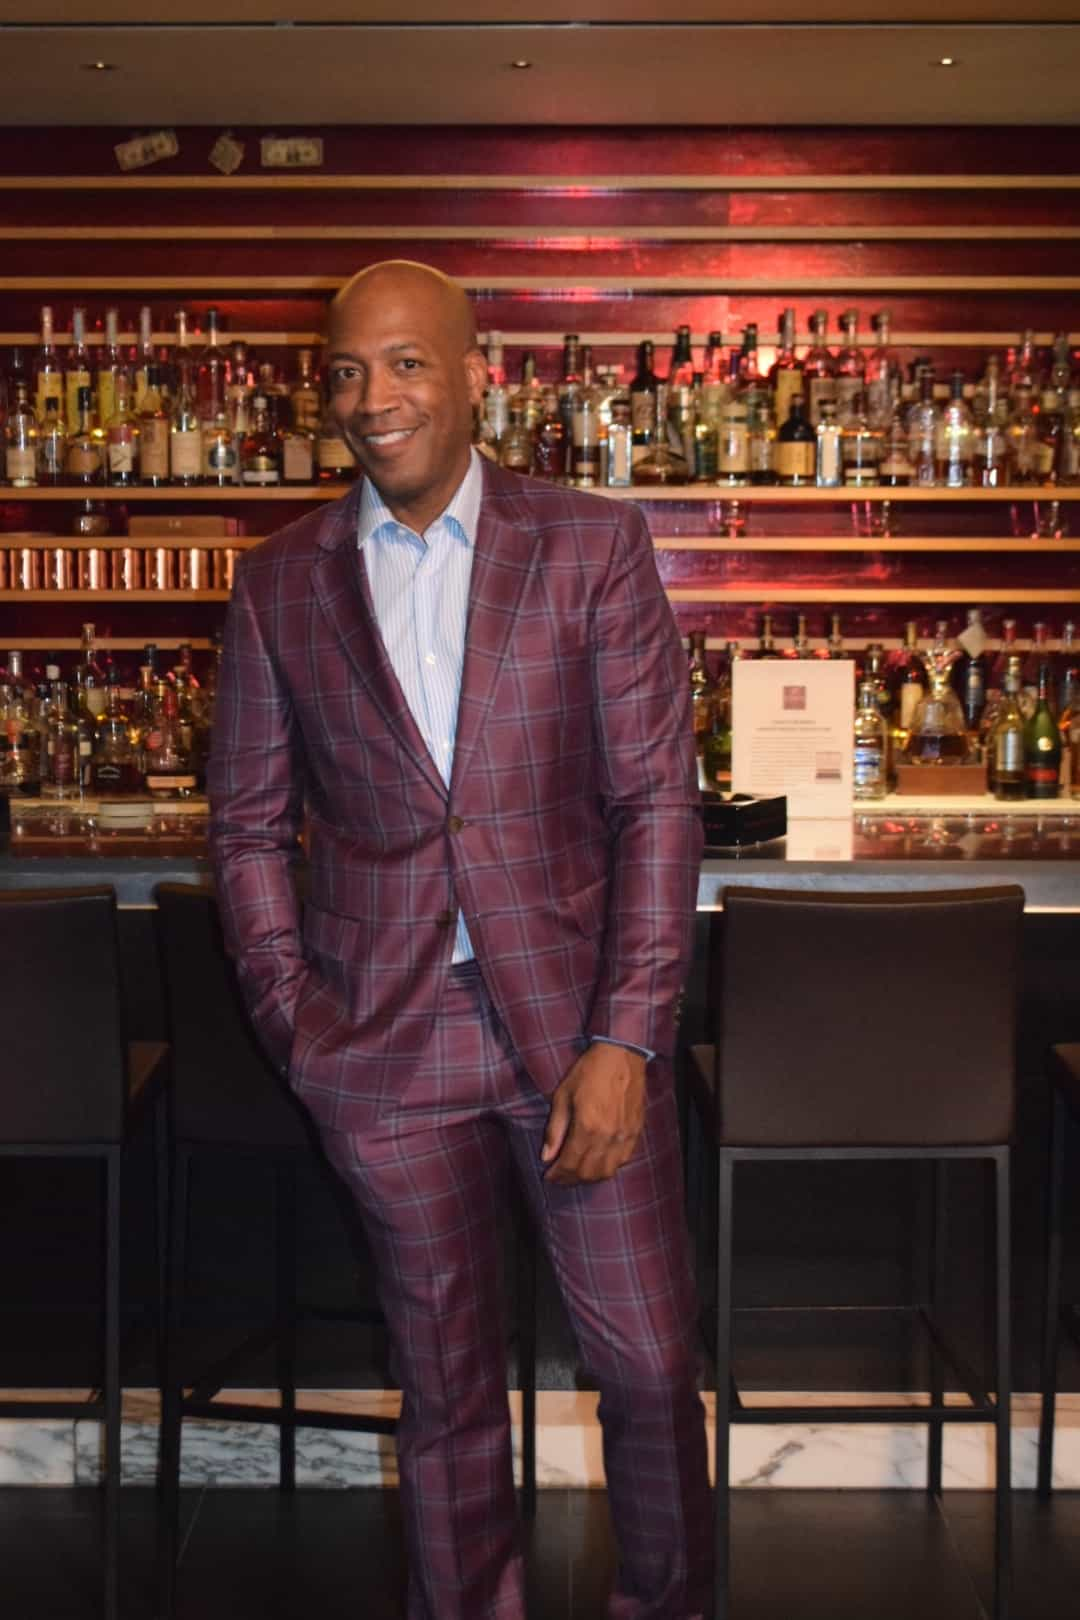 Barnette Holston wearing plaid wine color suit and striped button down